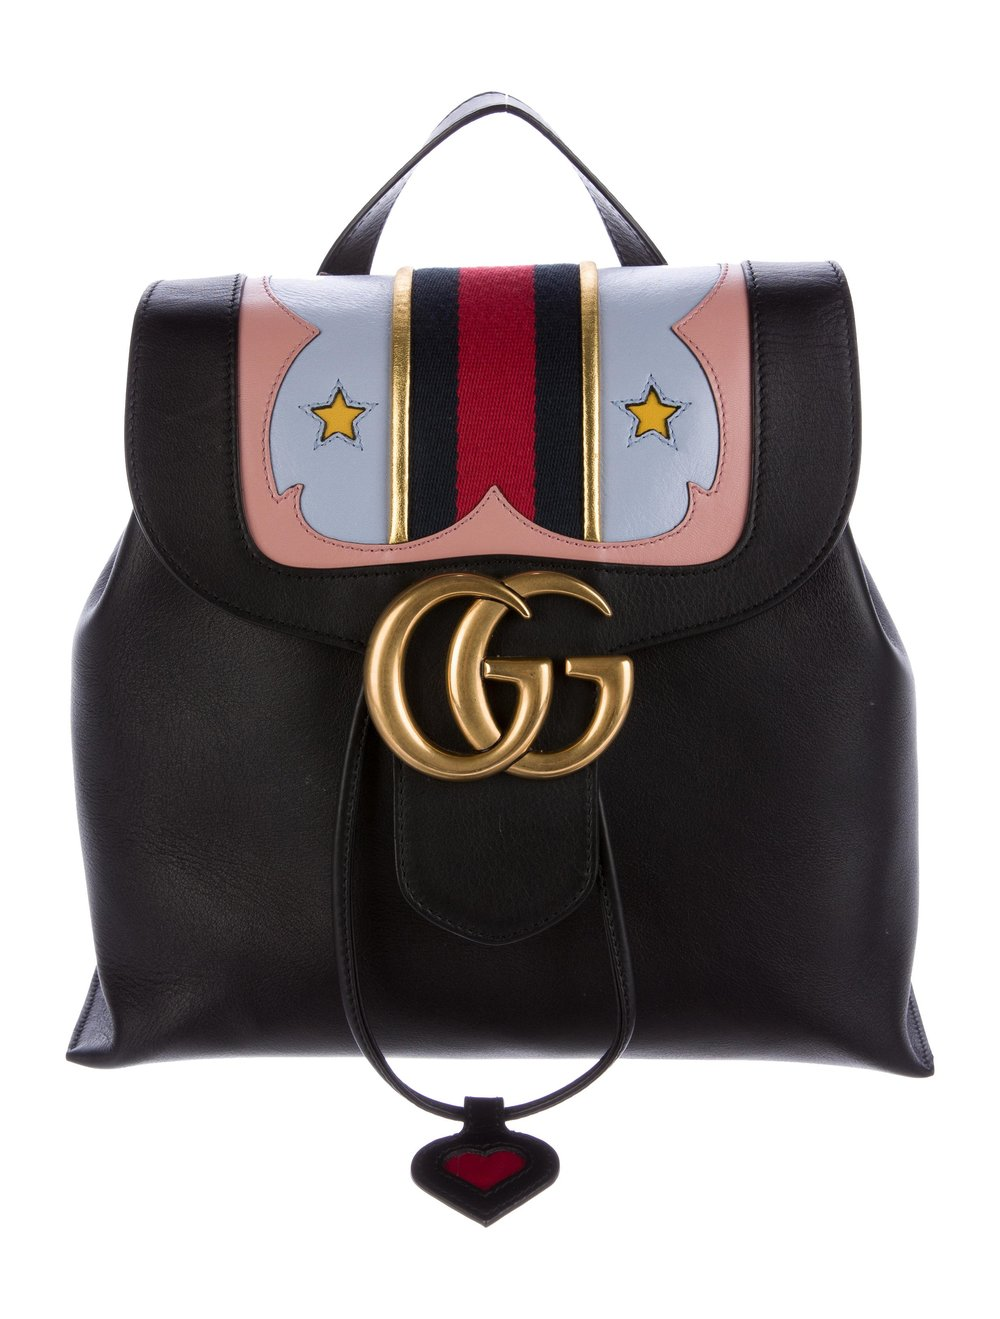 GUCCI     2017 Marmont Web Backpack, $2,200, therealreal.com